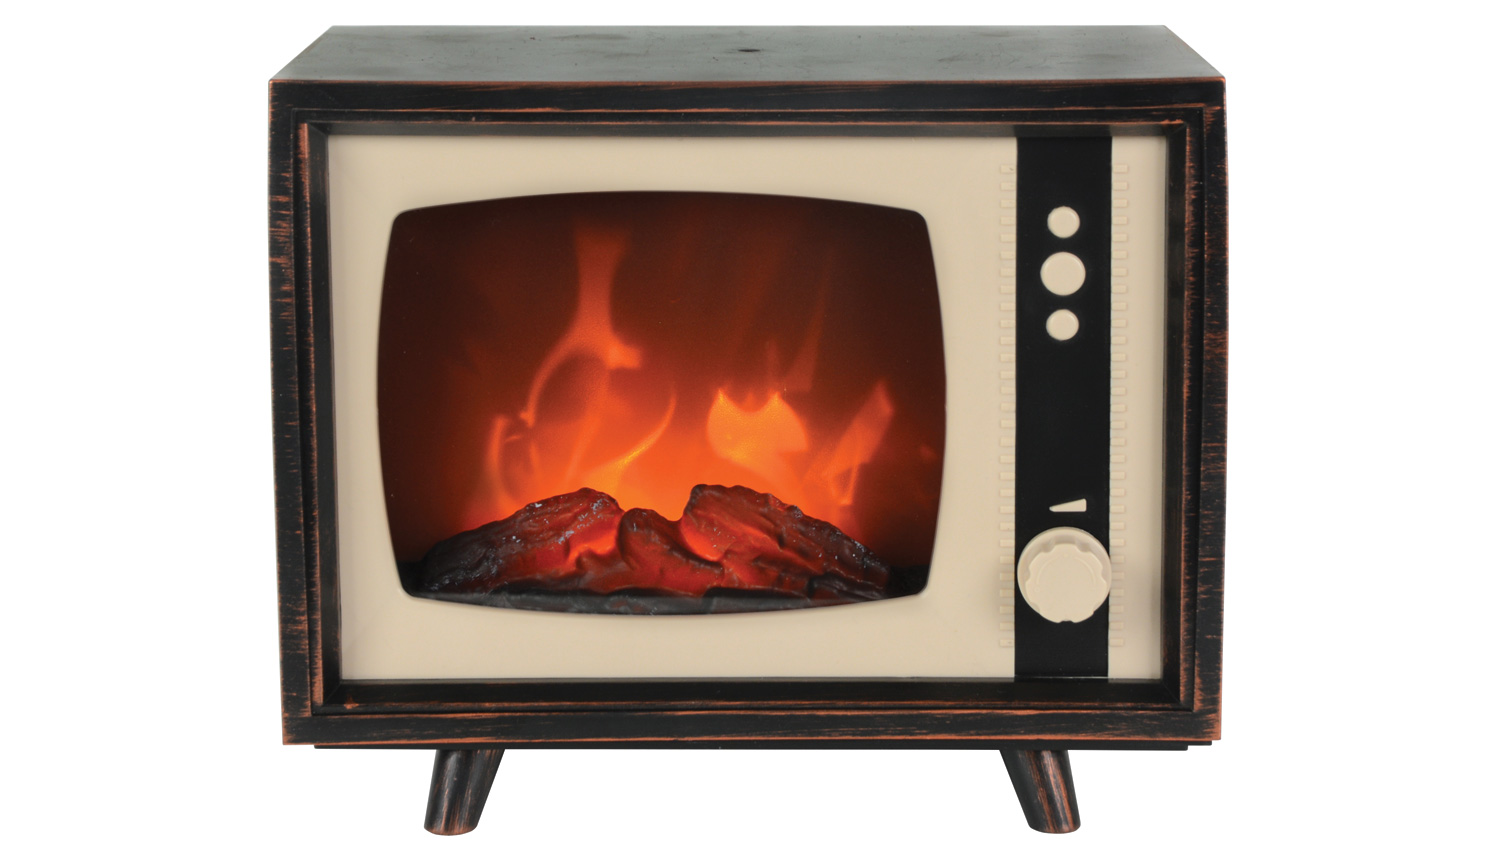 LED Fireplace Television